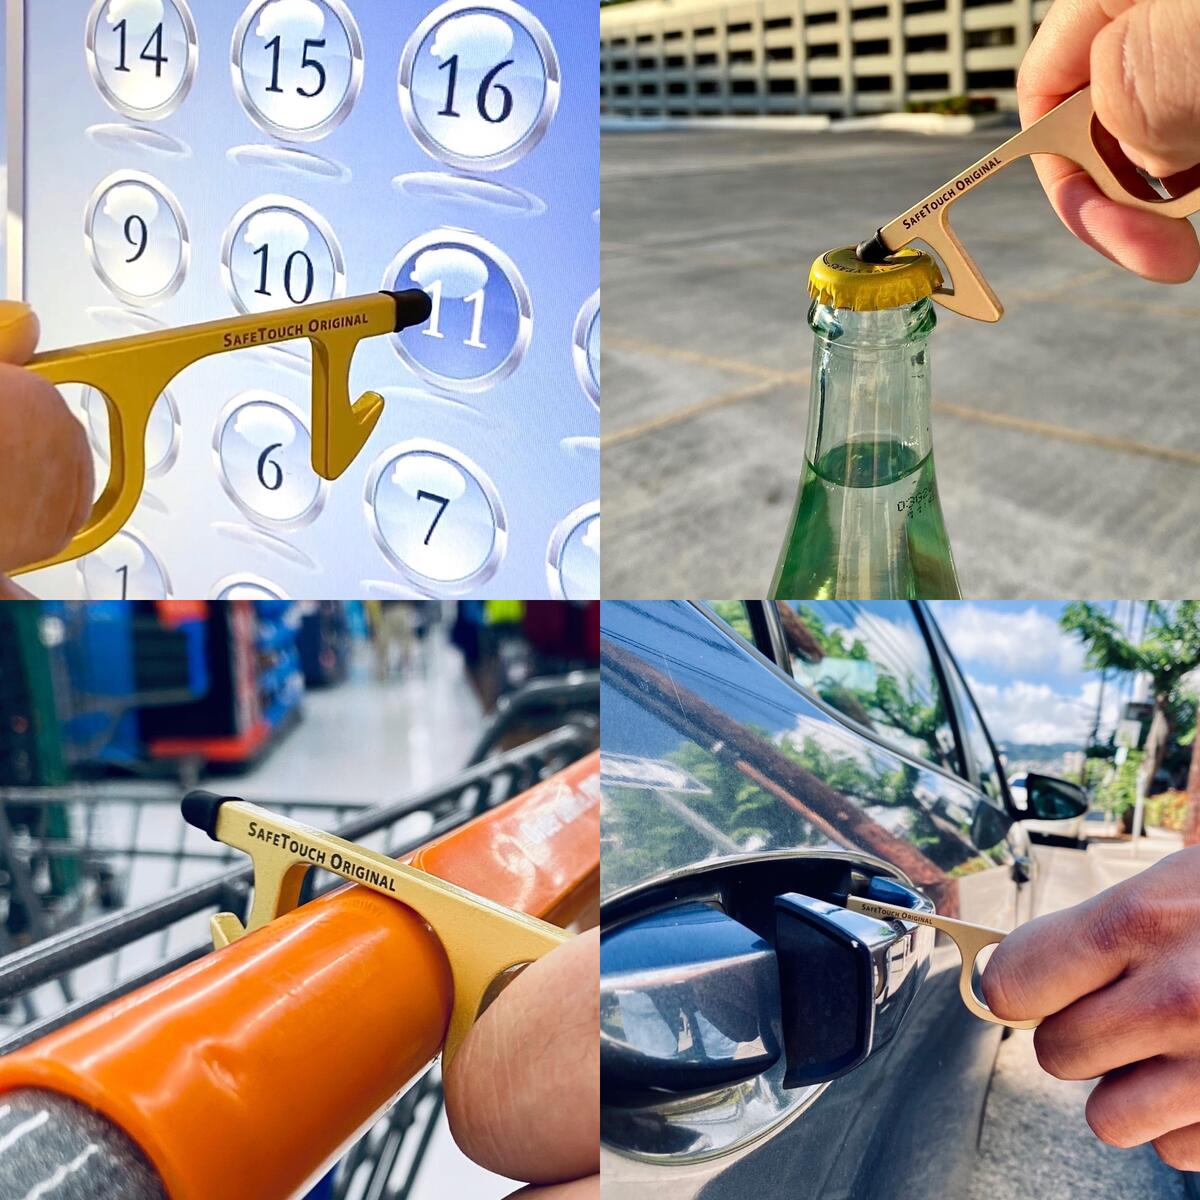 No Touch Door Opener Tool Kit with Fixed Stylus Tip - Premium Solid Brass Keychain Bottle Opener Tool and Button Pusher + Retractable Spring Hook - Copper Touchless Door Opener Tool - Free Gift Box